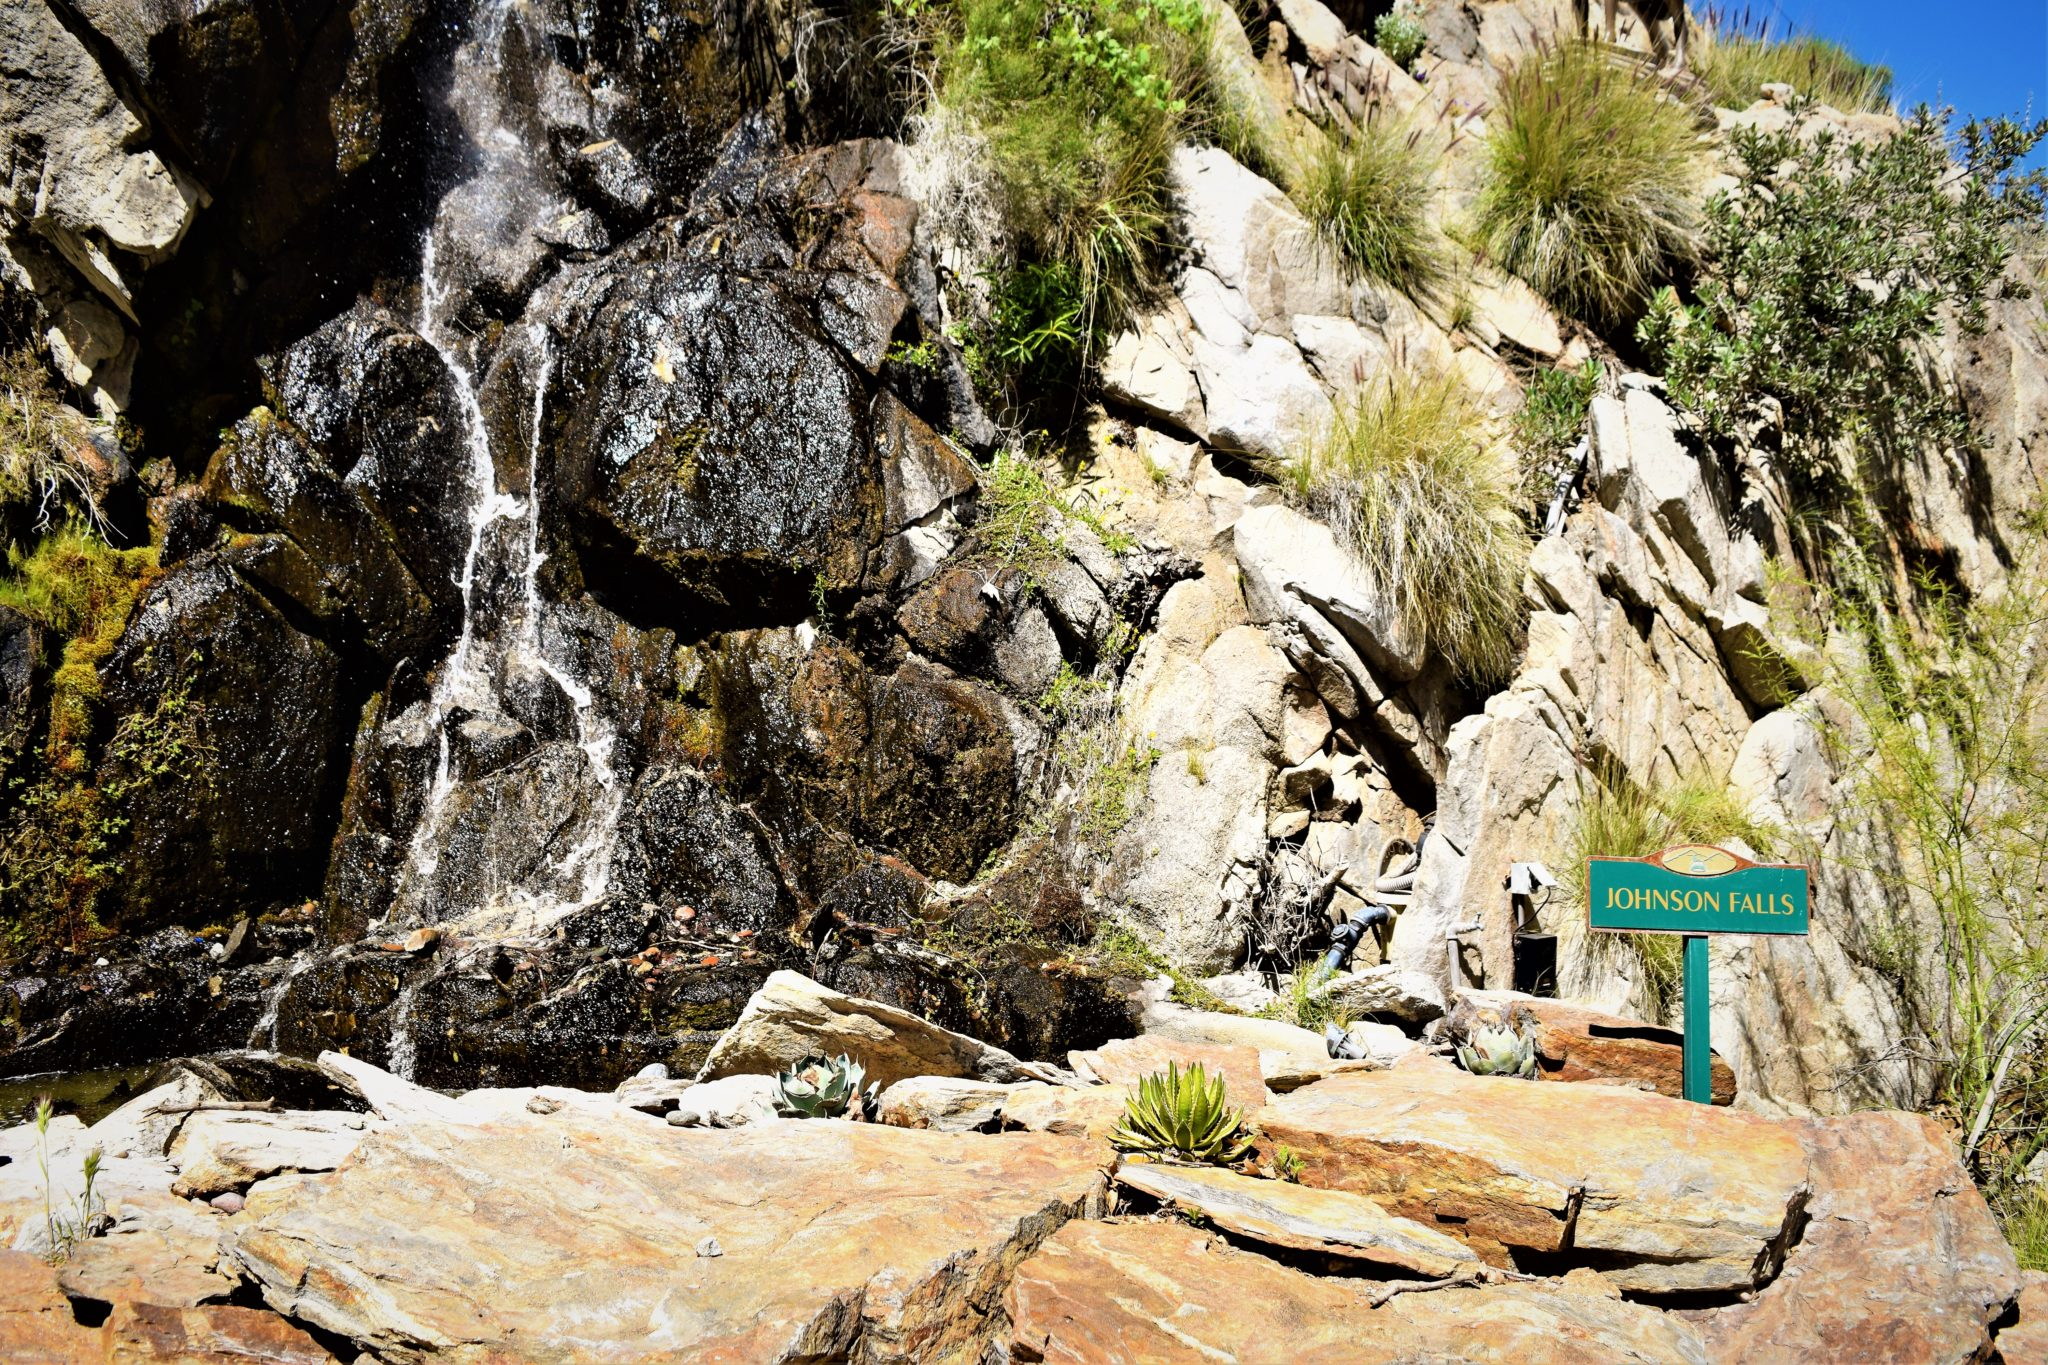 Johnson Falls, Palm Springs tramway waterfall, California